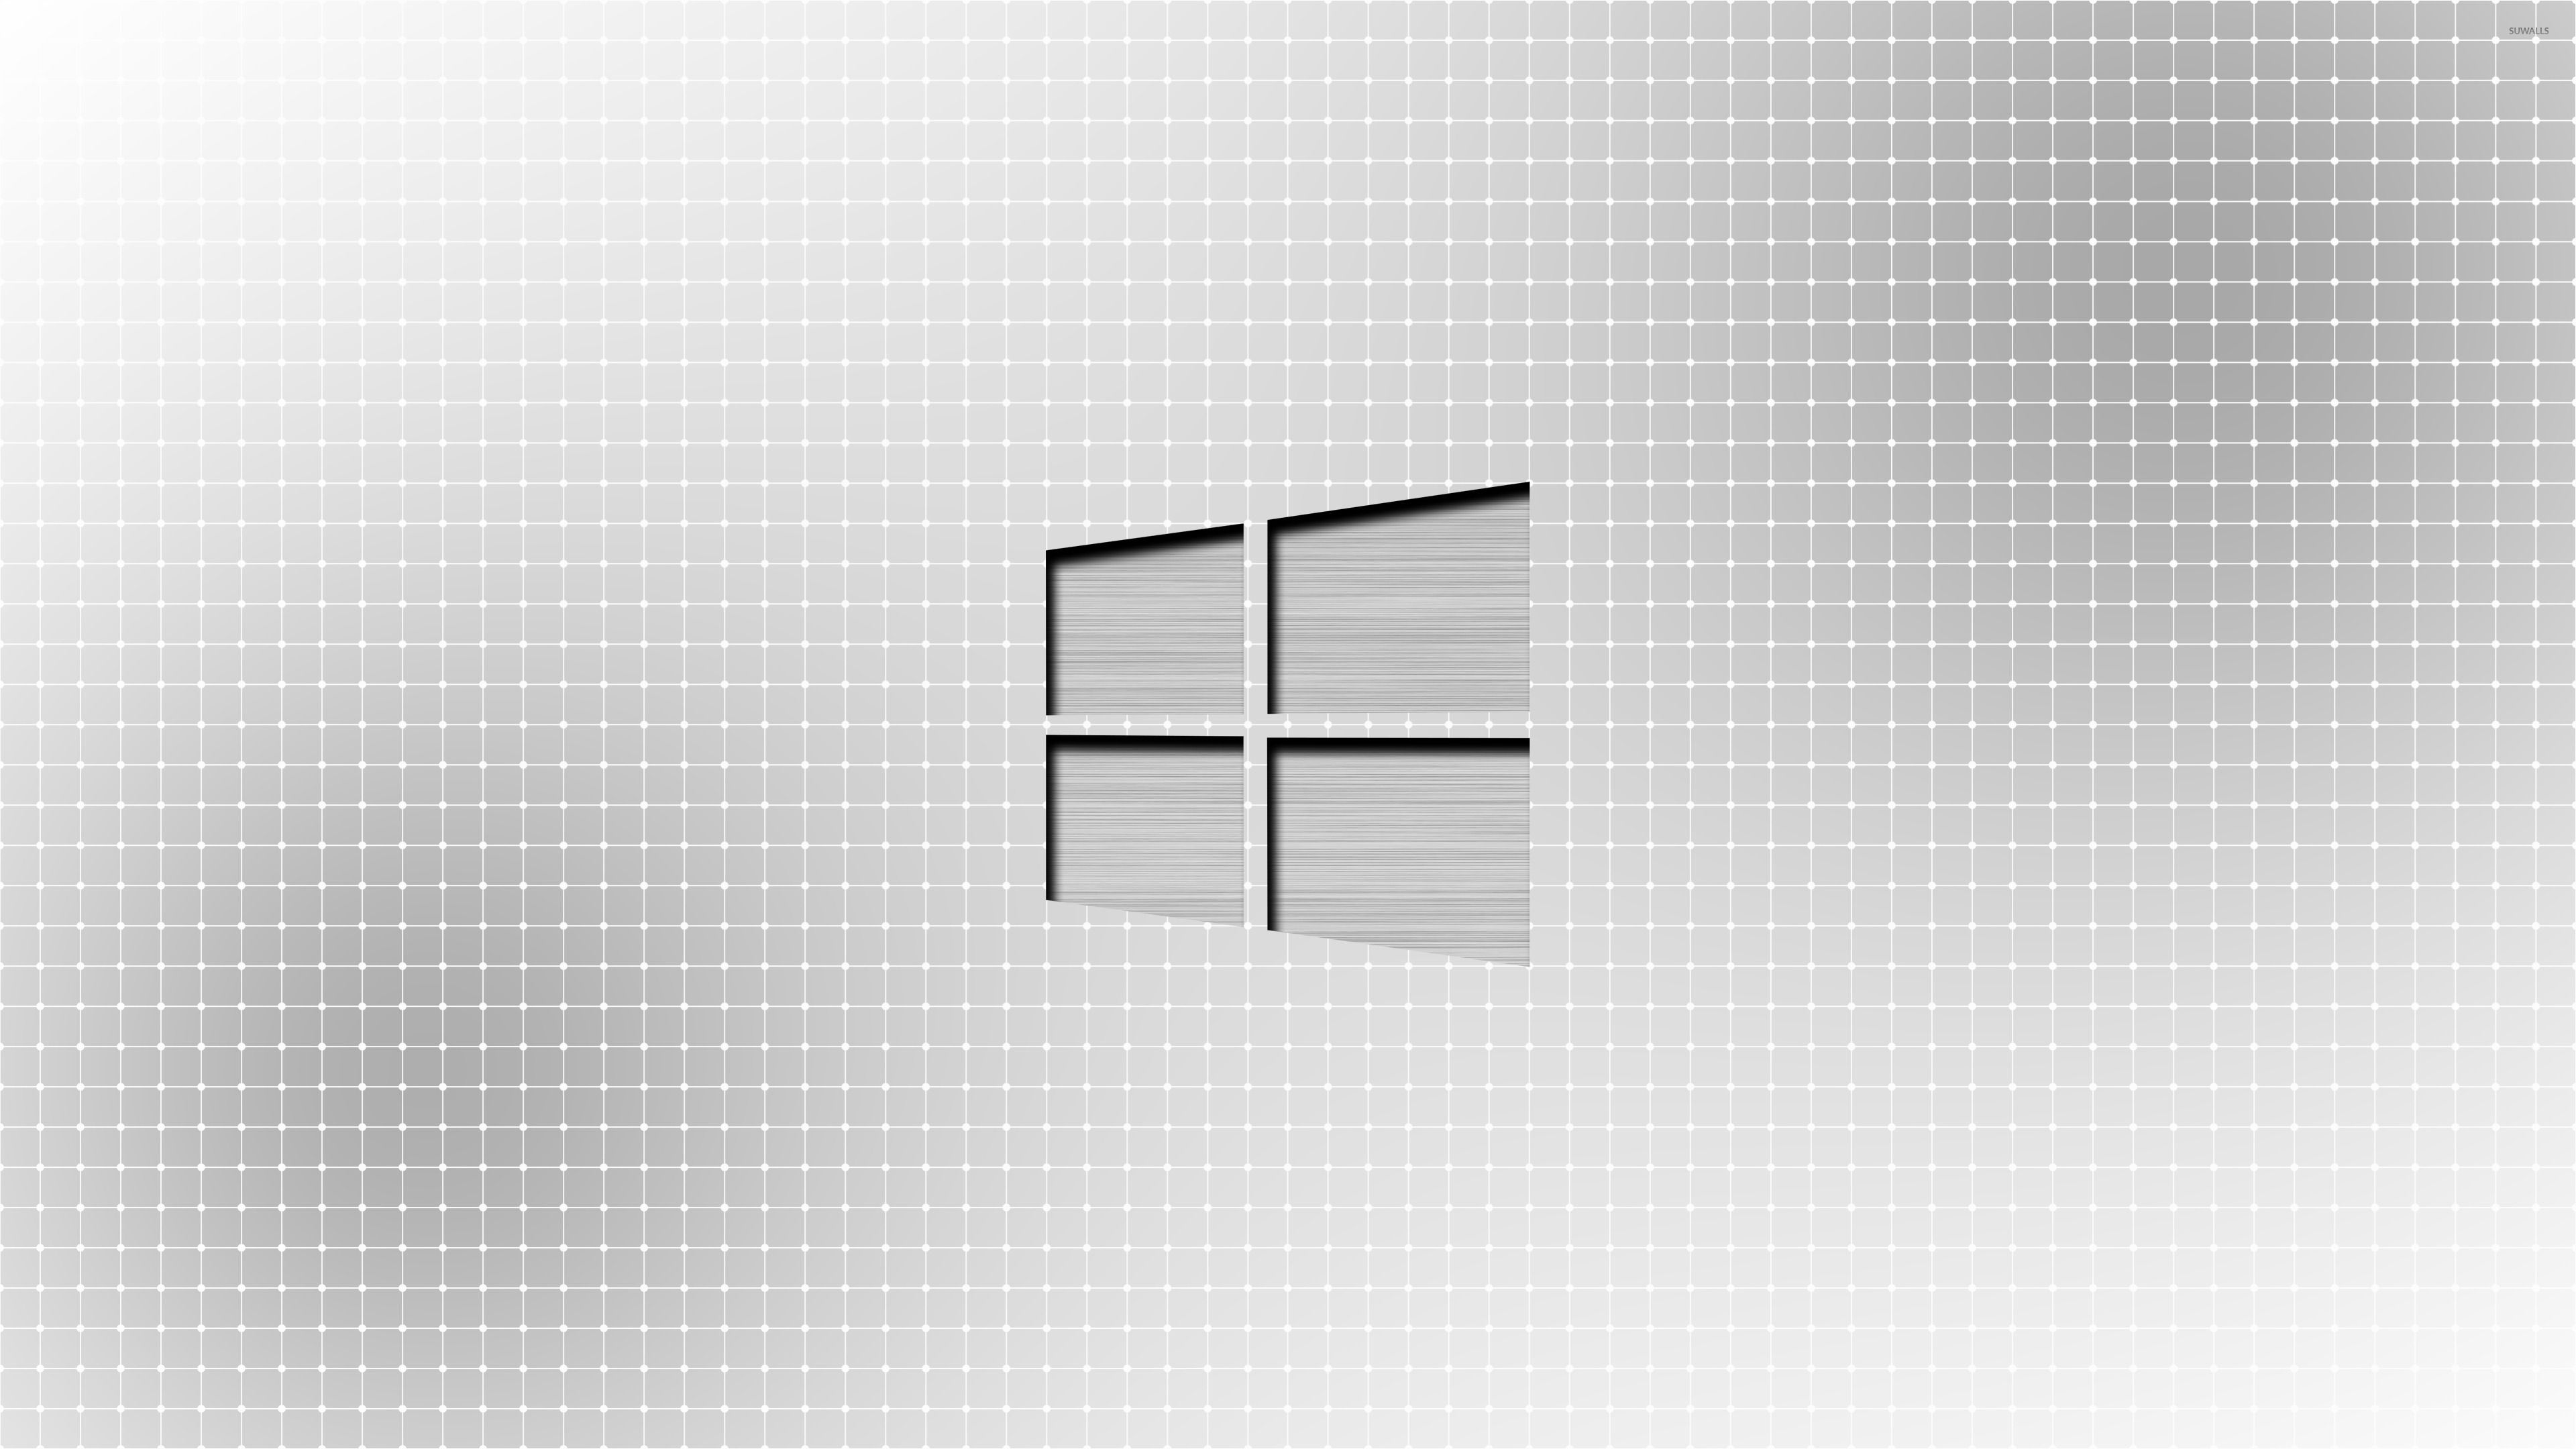 Grid Computer Wallpapers Top Free Grid Computer Backgrounds Wallpaperaccess